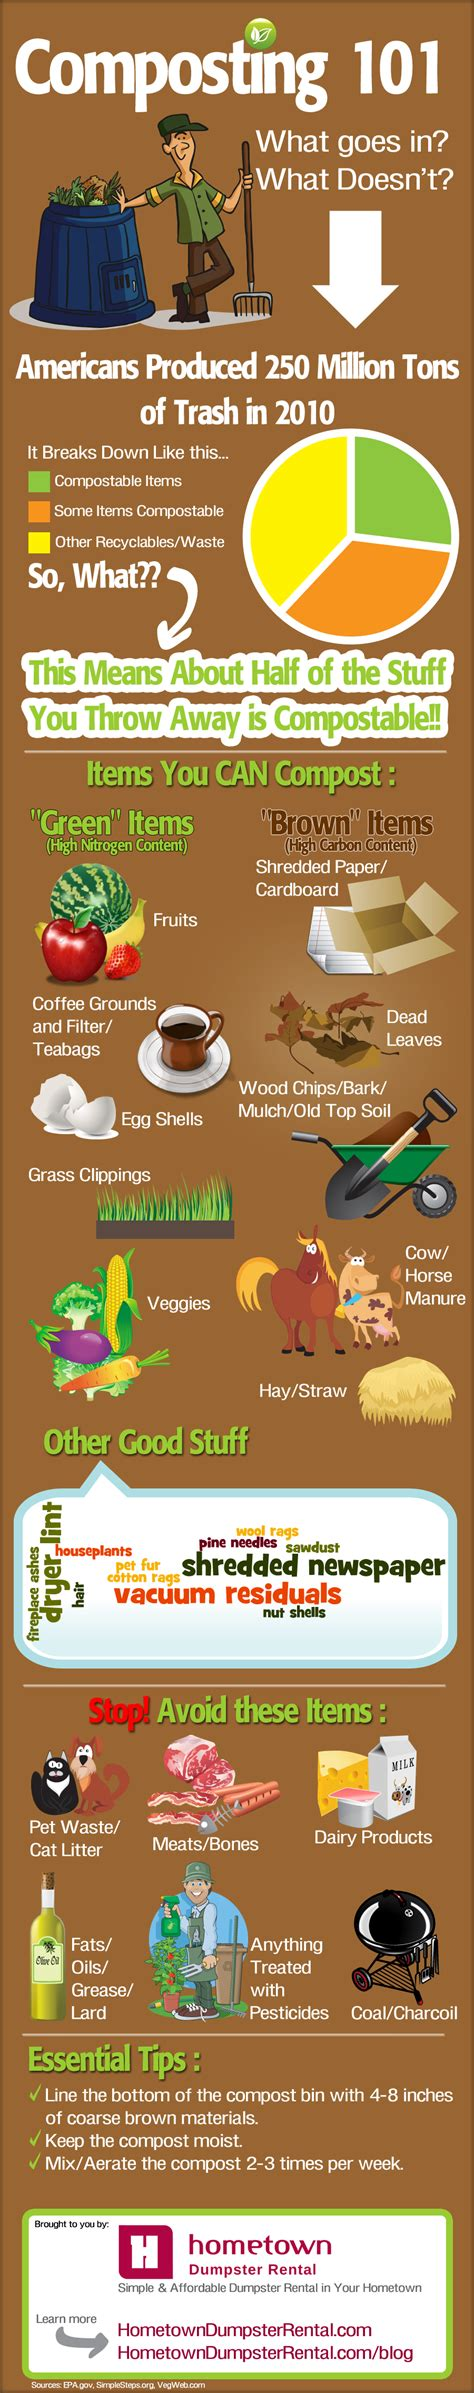 backyard composting guide sharpex gardening community composting guide what you